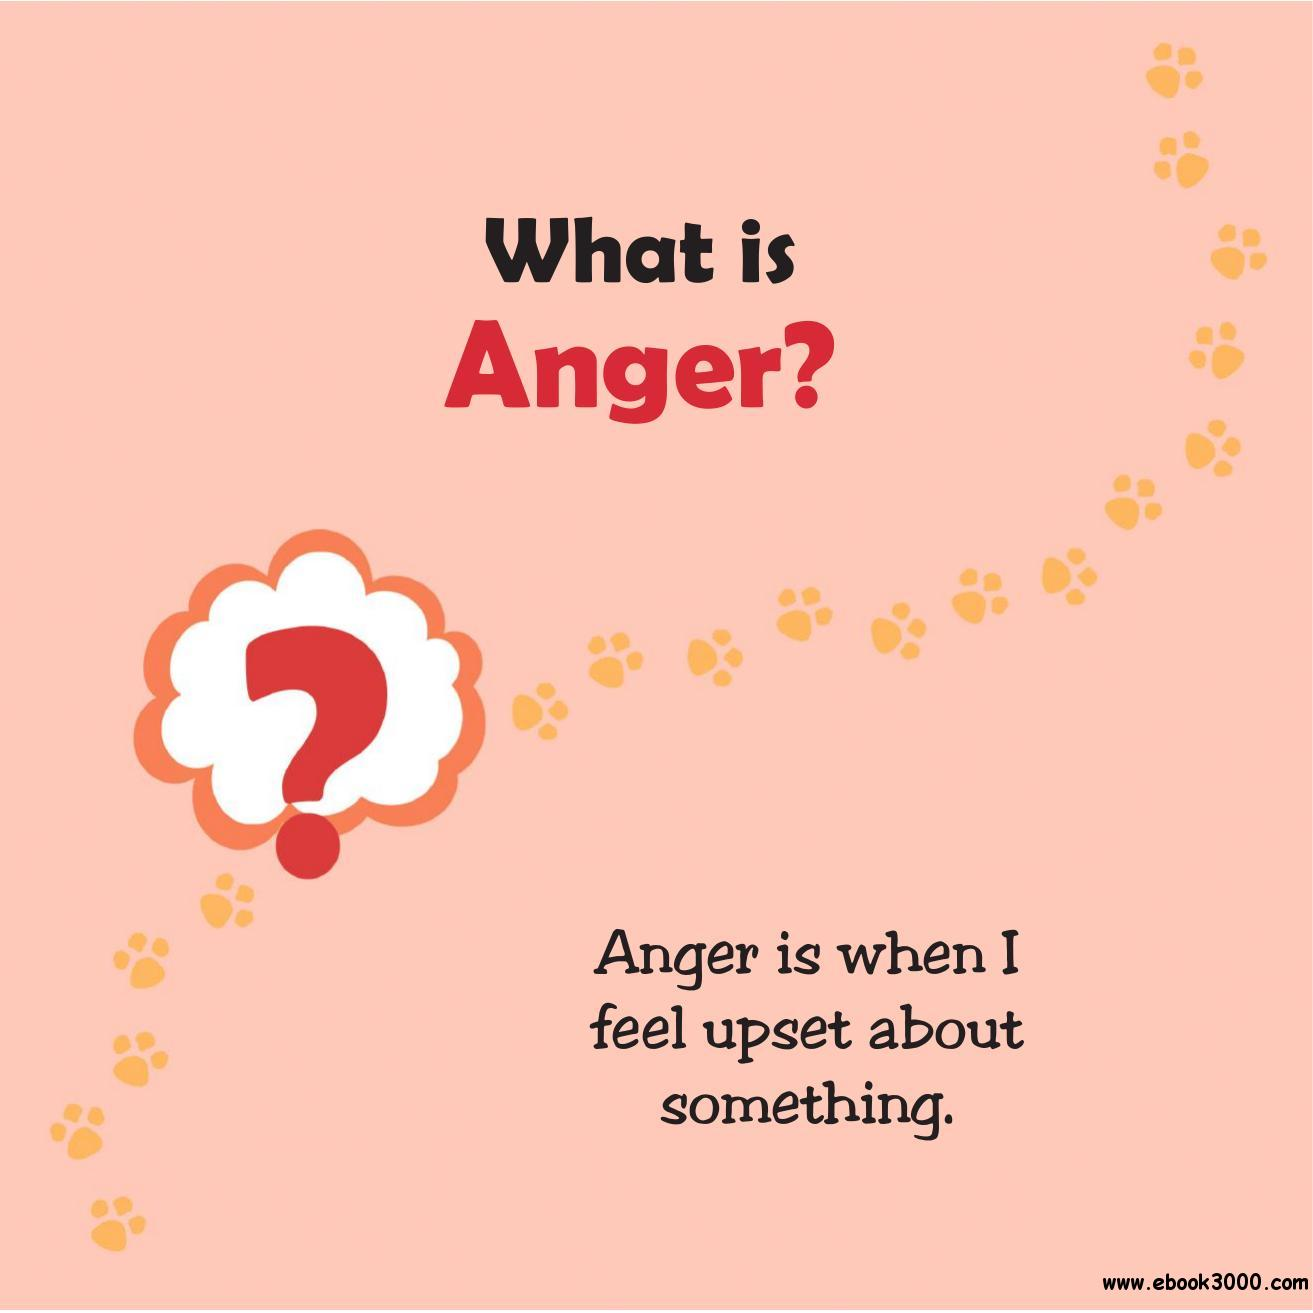 Tiny Thoughts on Anger: Learning How to Handle Anger